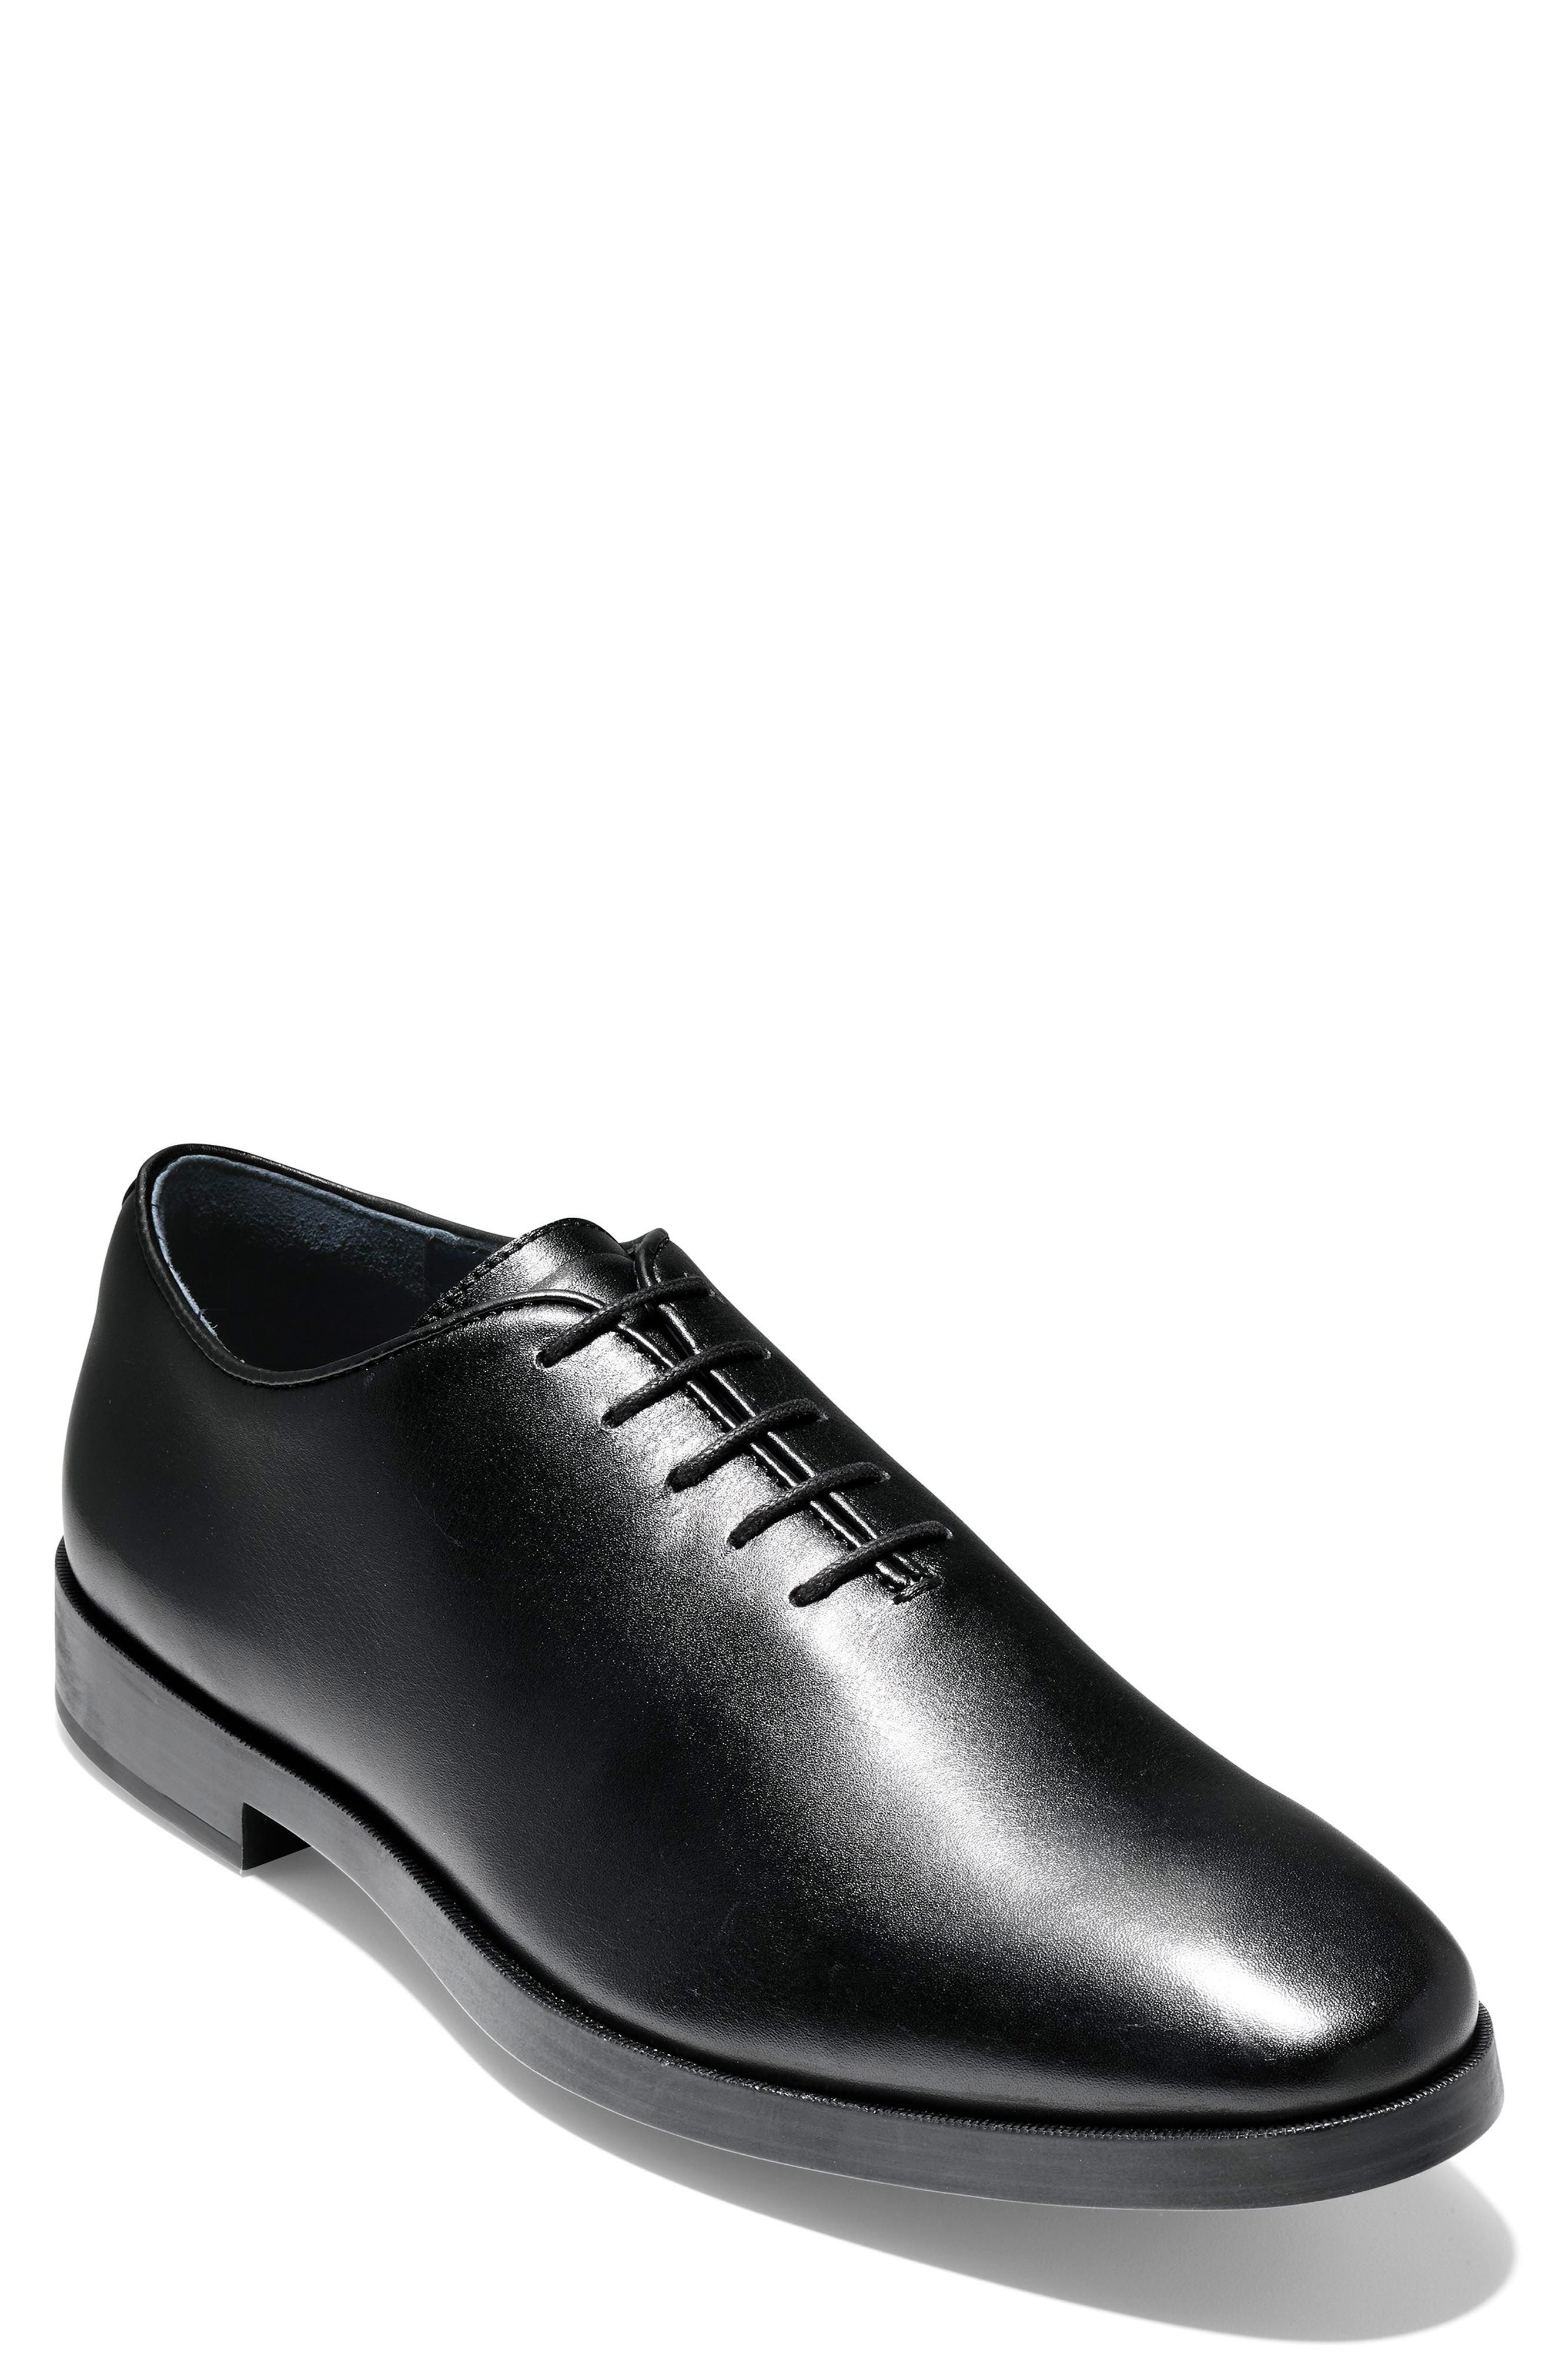 Jefferson Waterproof Wholecut Oxford,                         Main,                         color, BLACK LEATHER